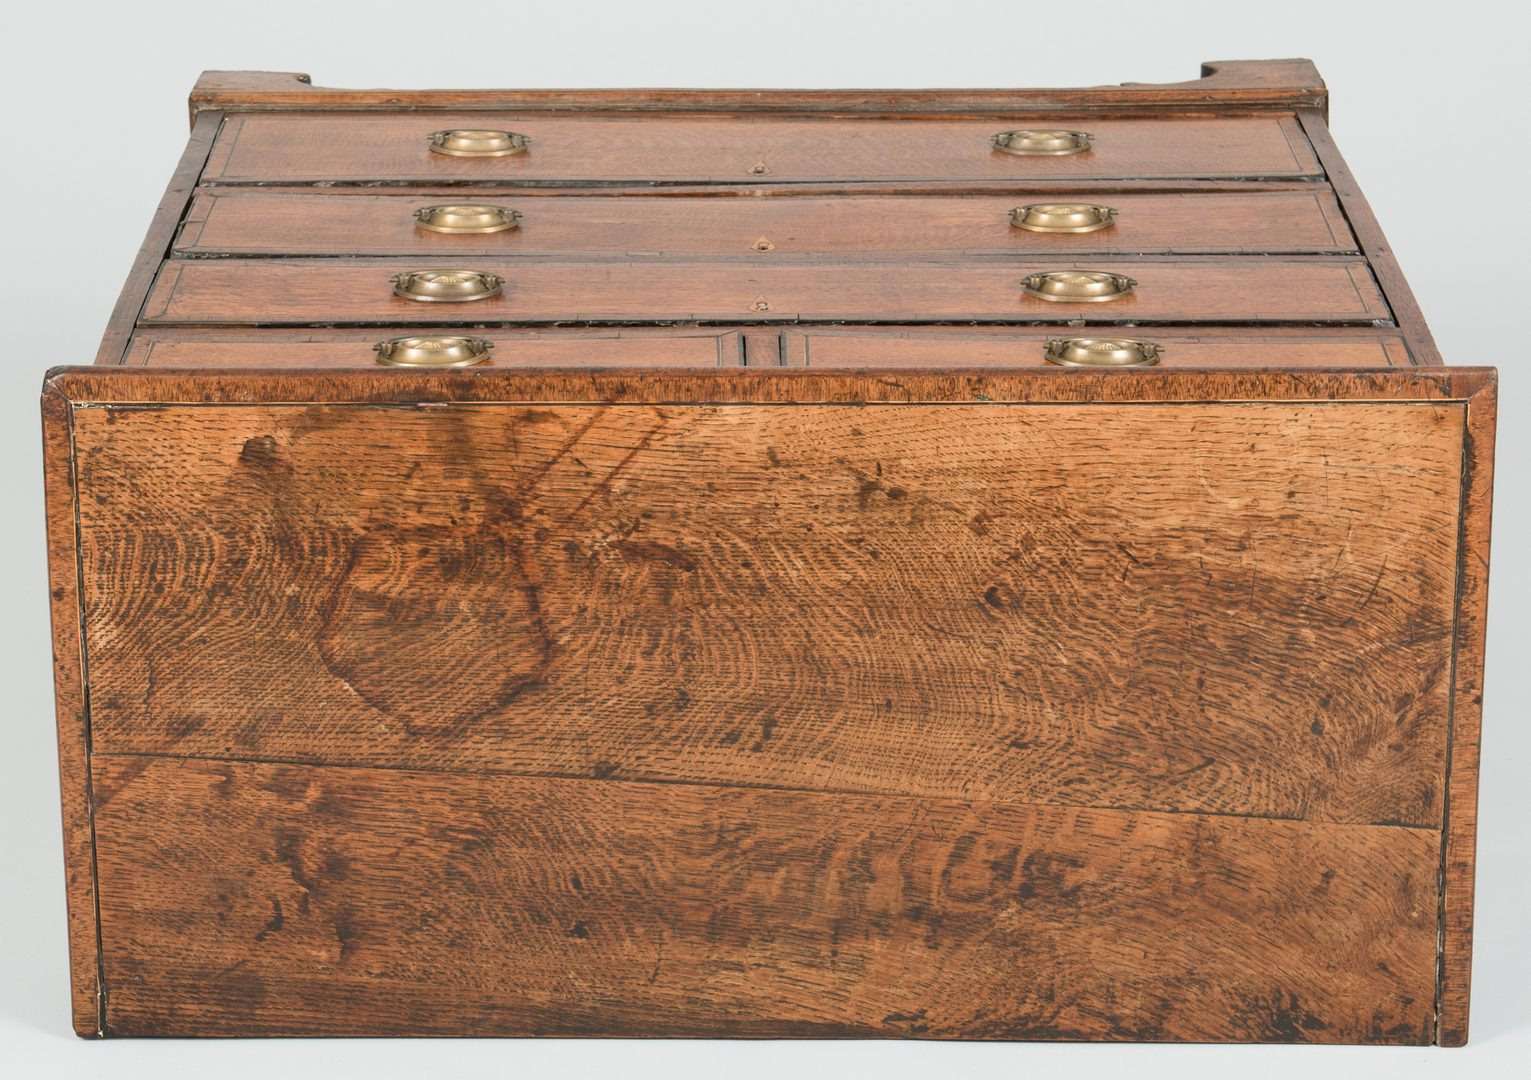 Lot 96: Inlaid Oak Chest of Drawers, 18th c.